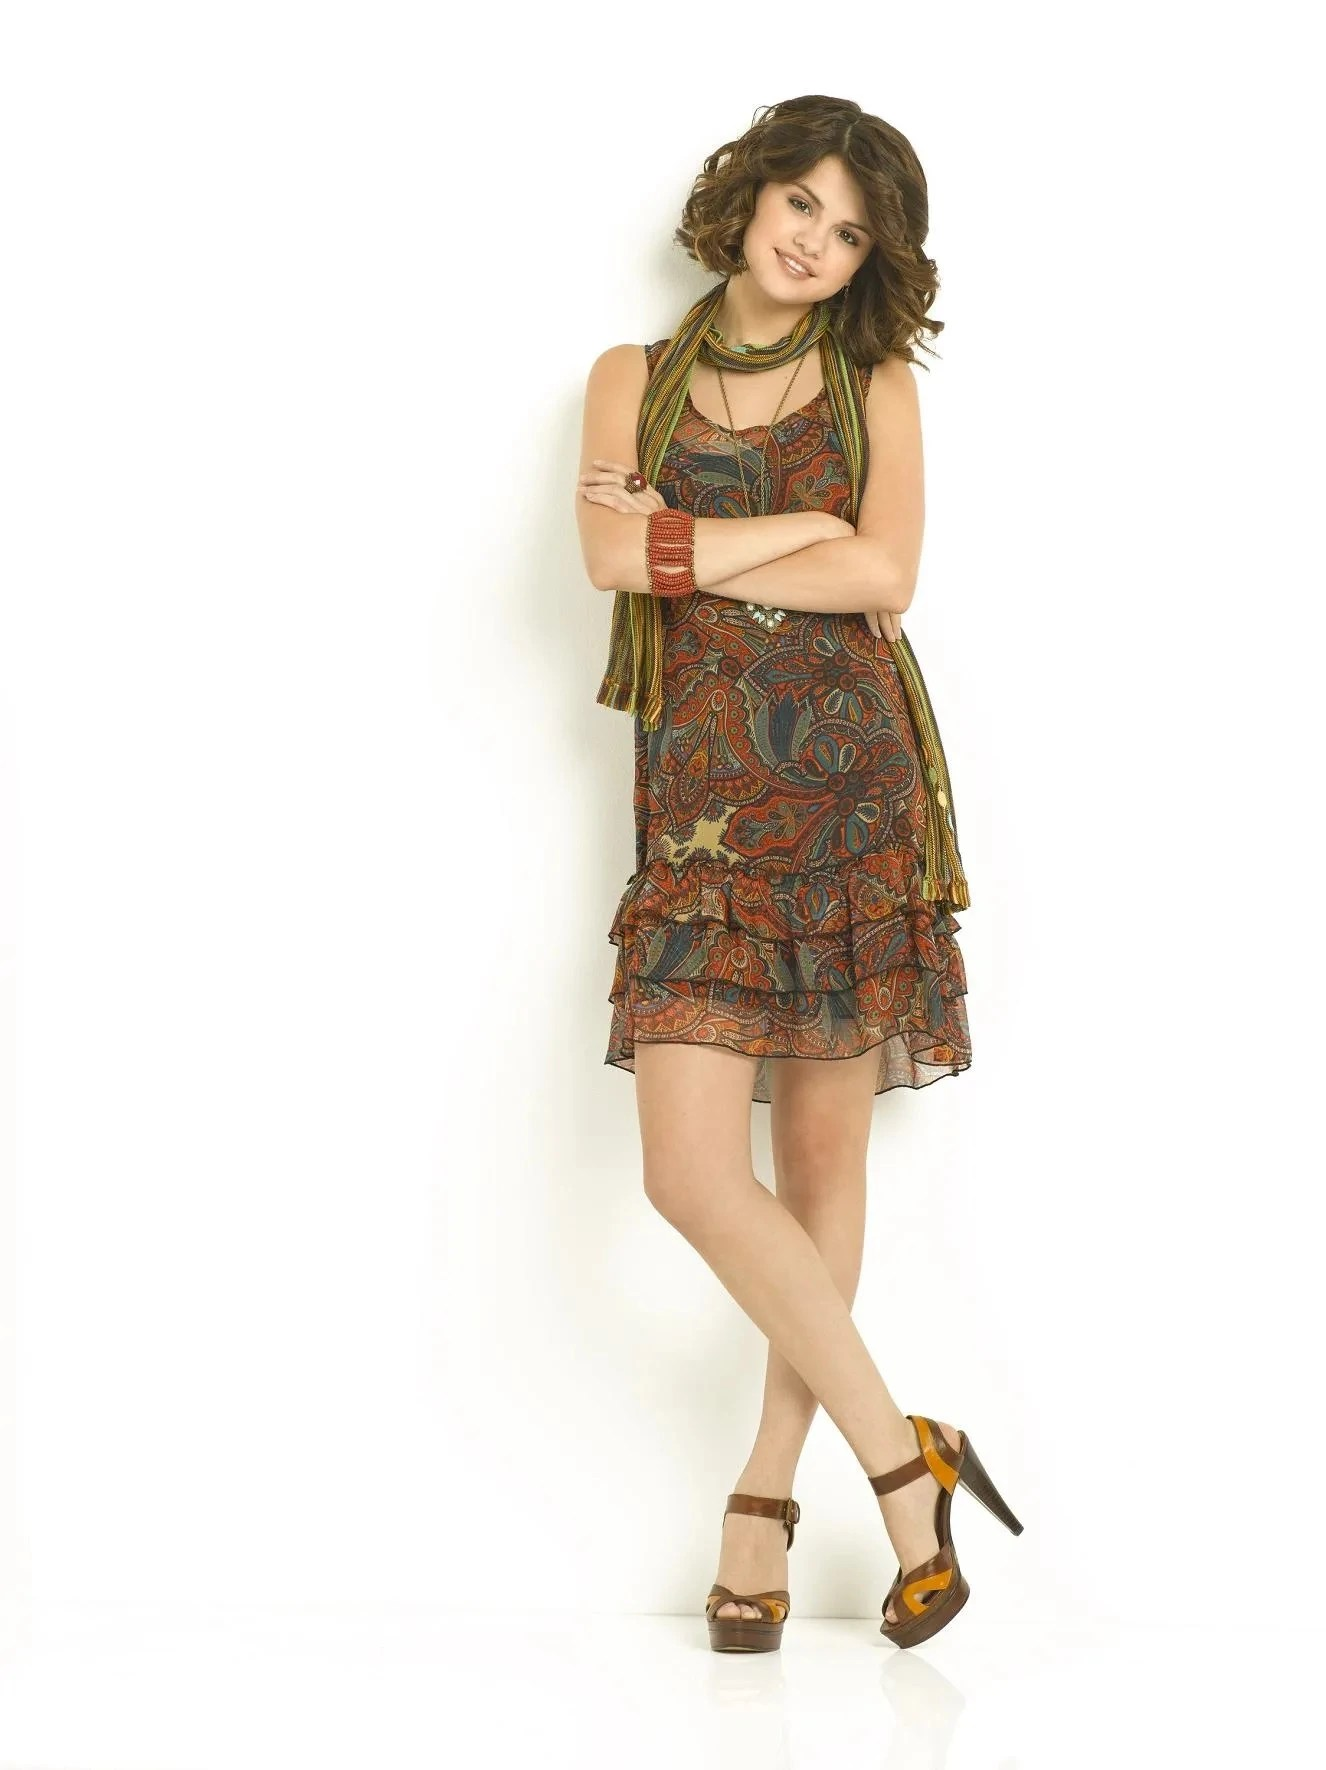 Alex Russo' Style Wizards Of Waverly Place Wiki